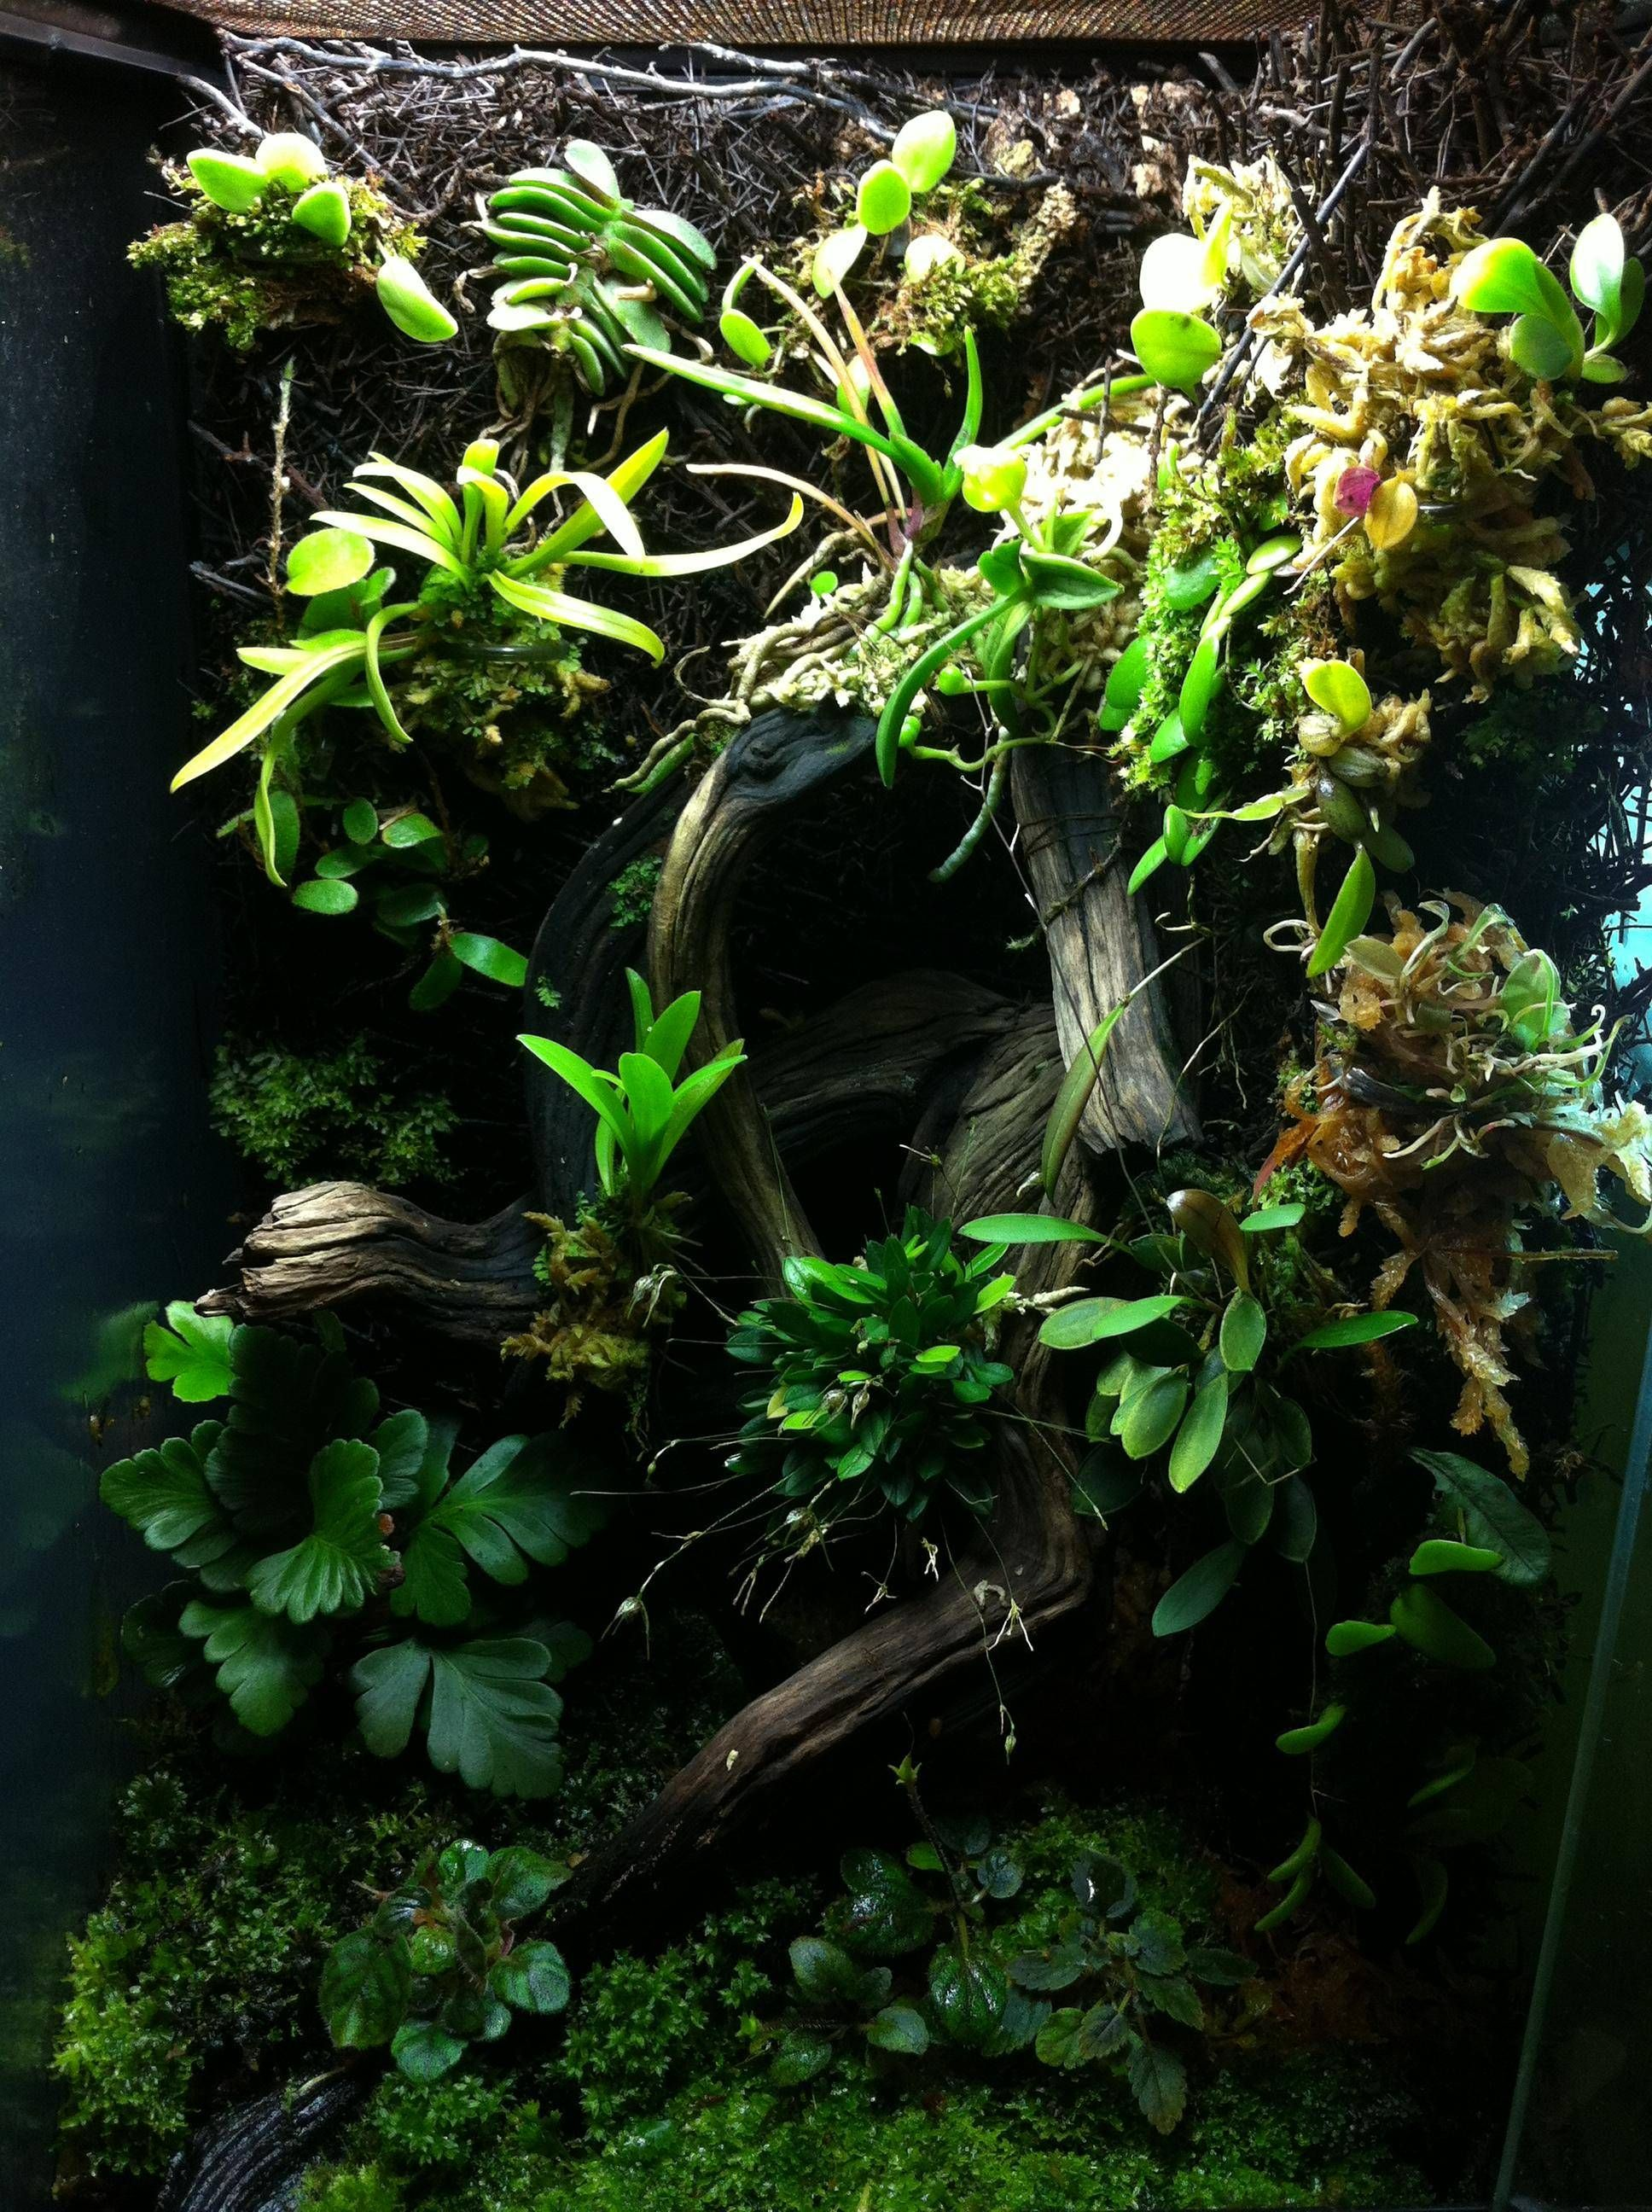 Click the image to open in full size. Orchid terrarium